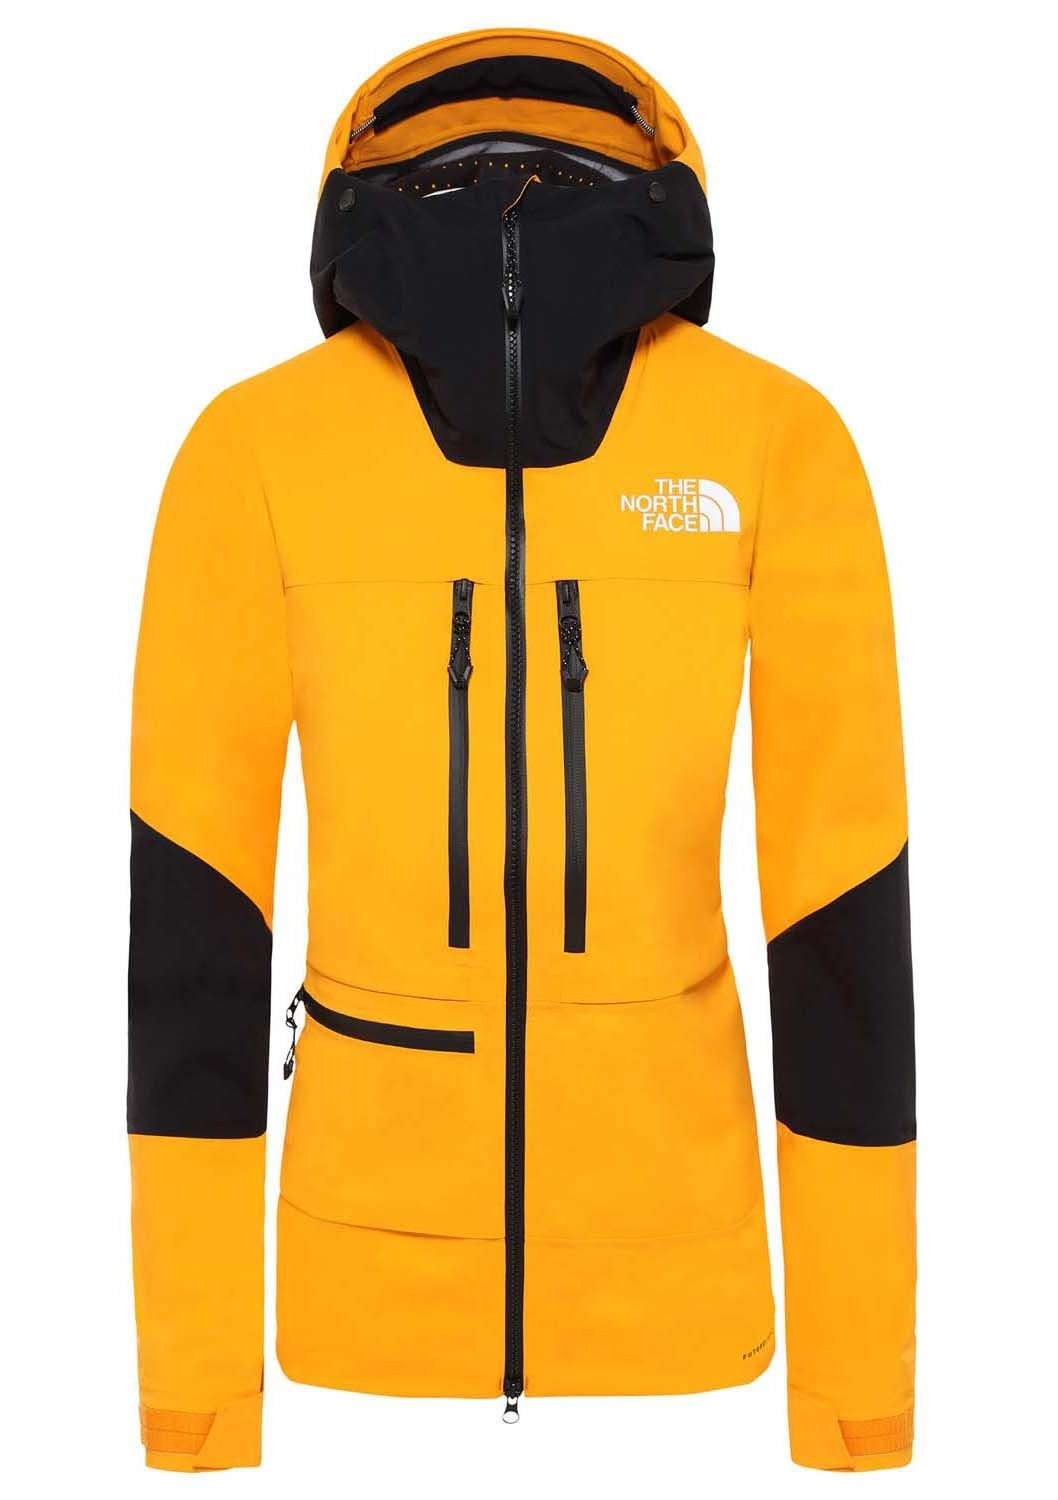 The North Face Summit L5 Jacket W, hardshell para mujer con la nueva membrana Futurelight